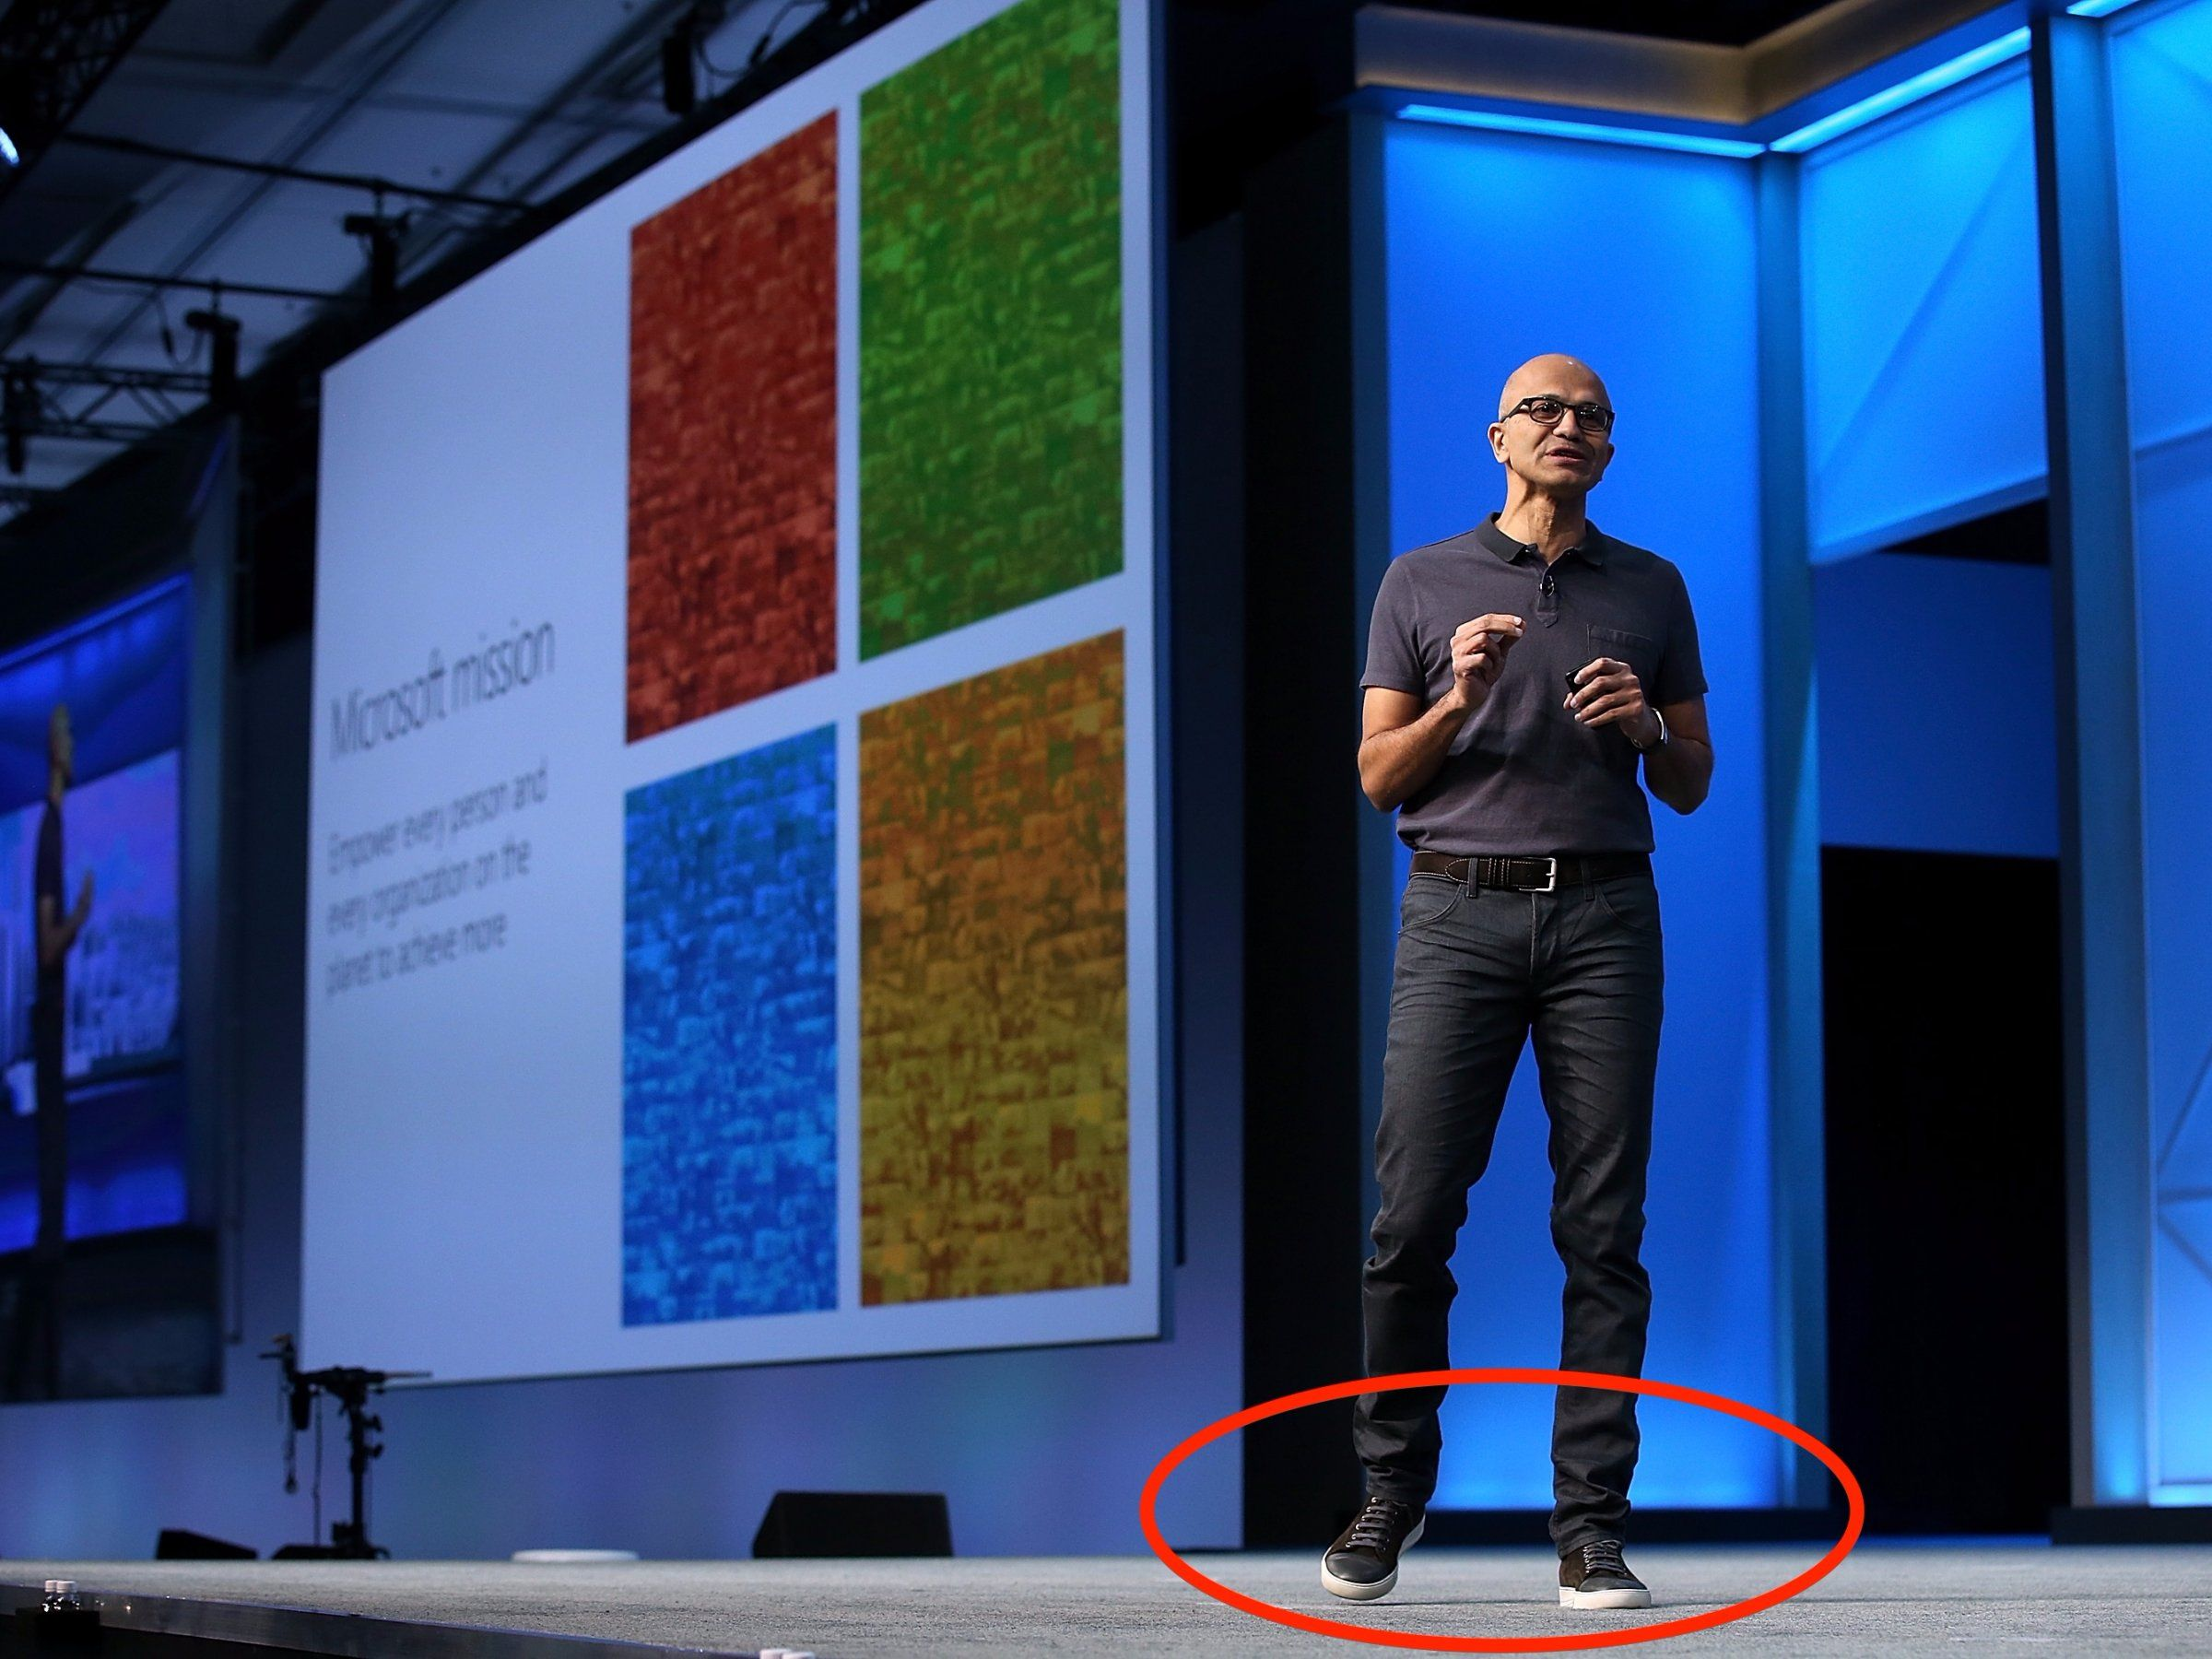 Shoes worn by tech execs are a Silicon Valley status symbol